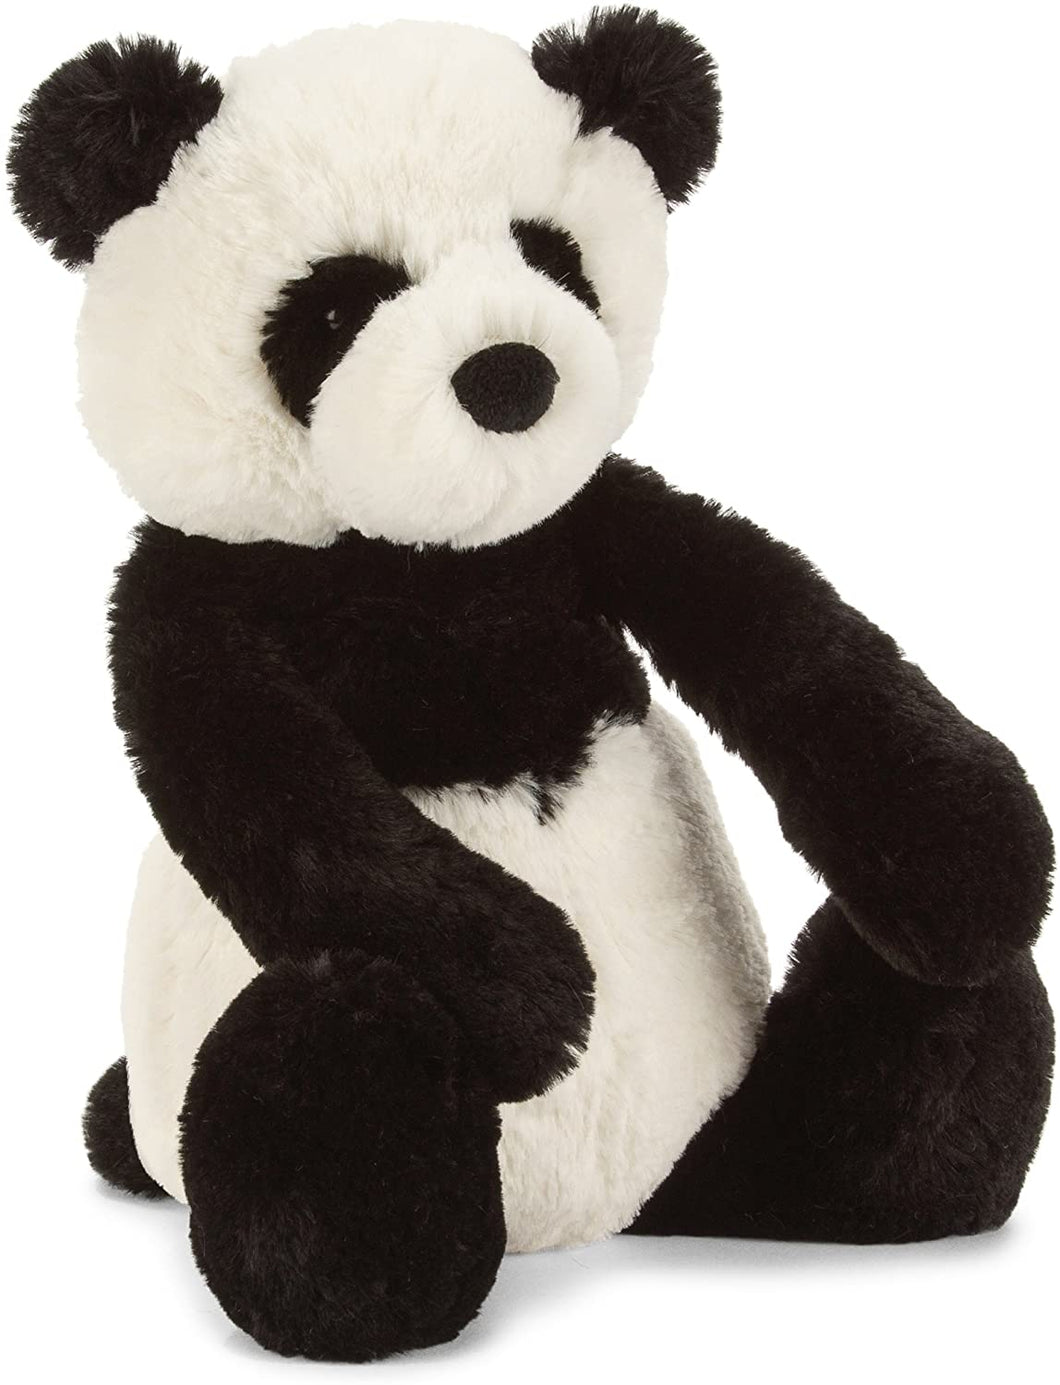 Jellycat Bashful Panda Cub Stuffed Animal, Medium 12 inches